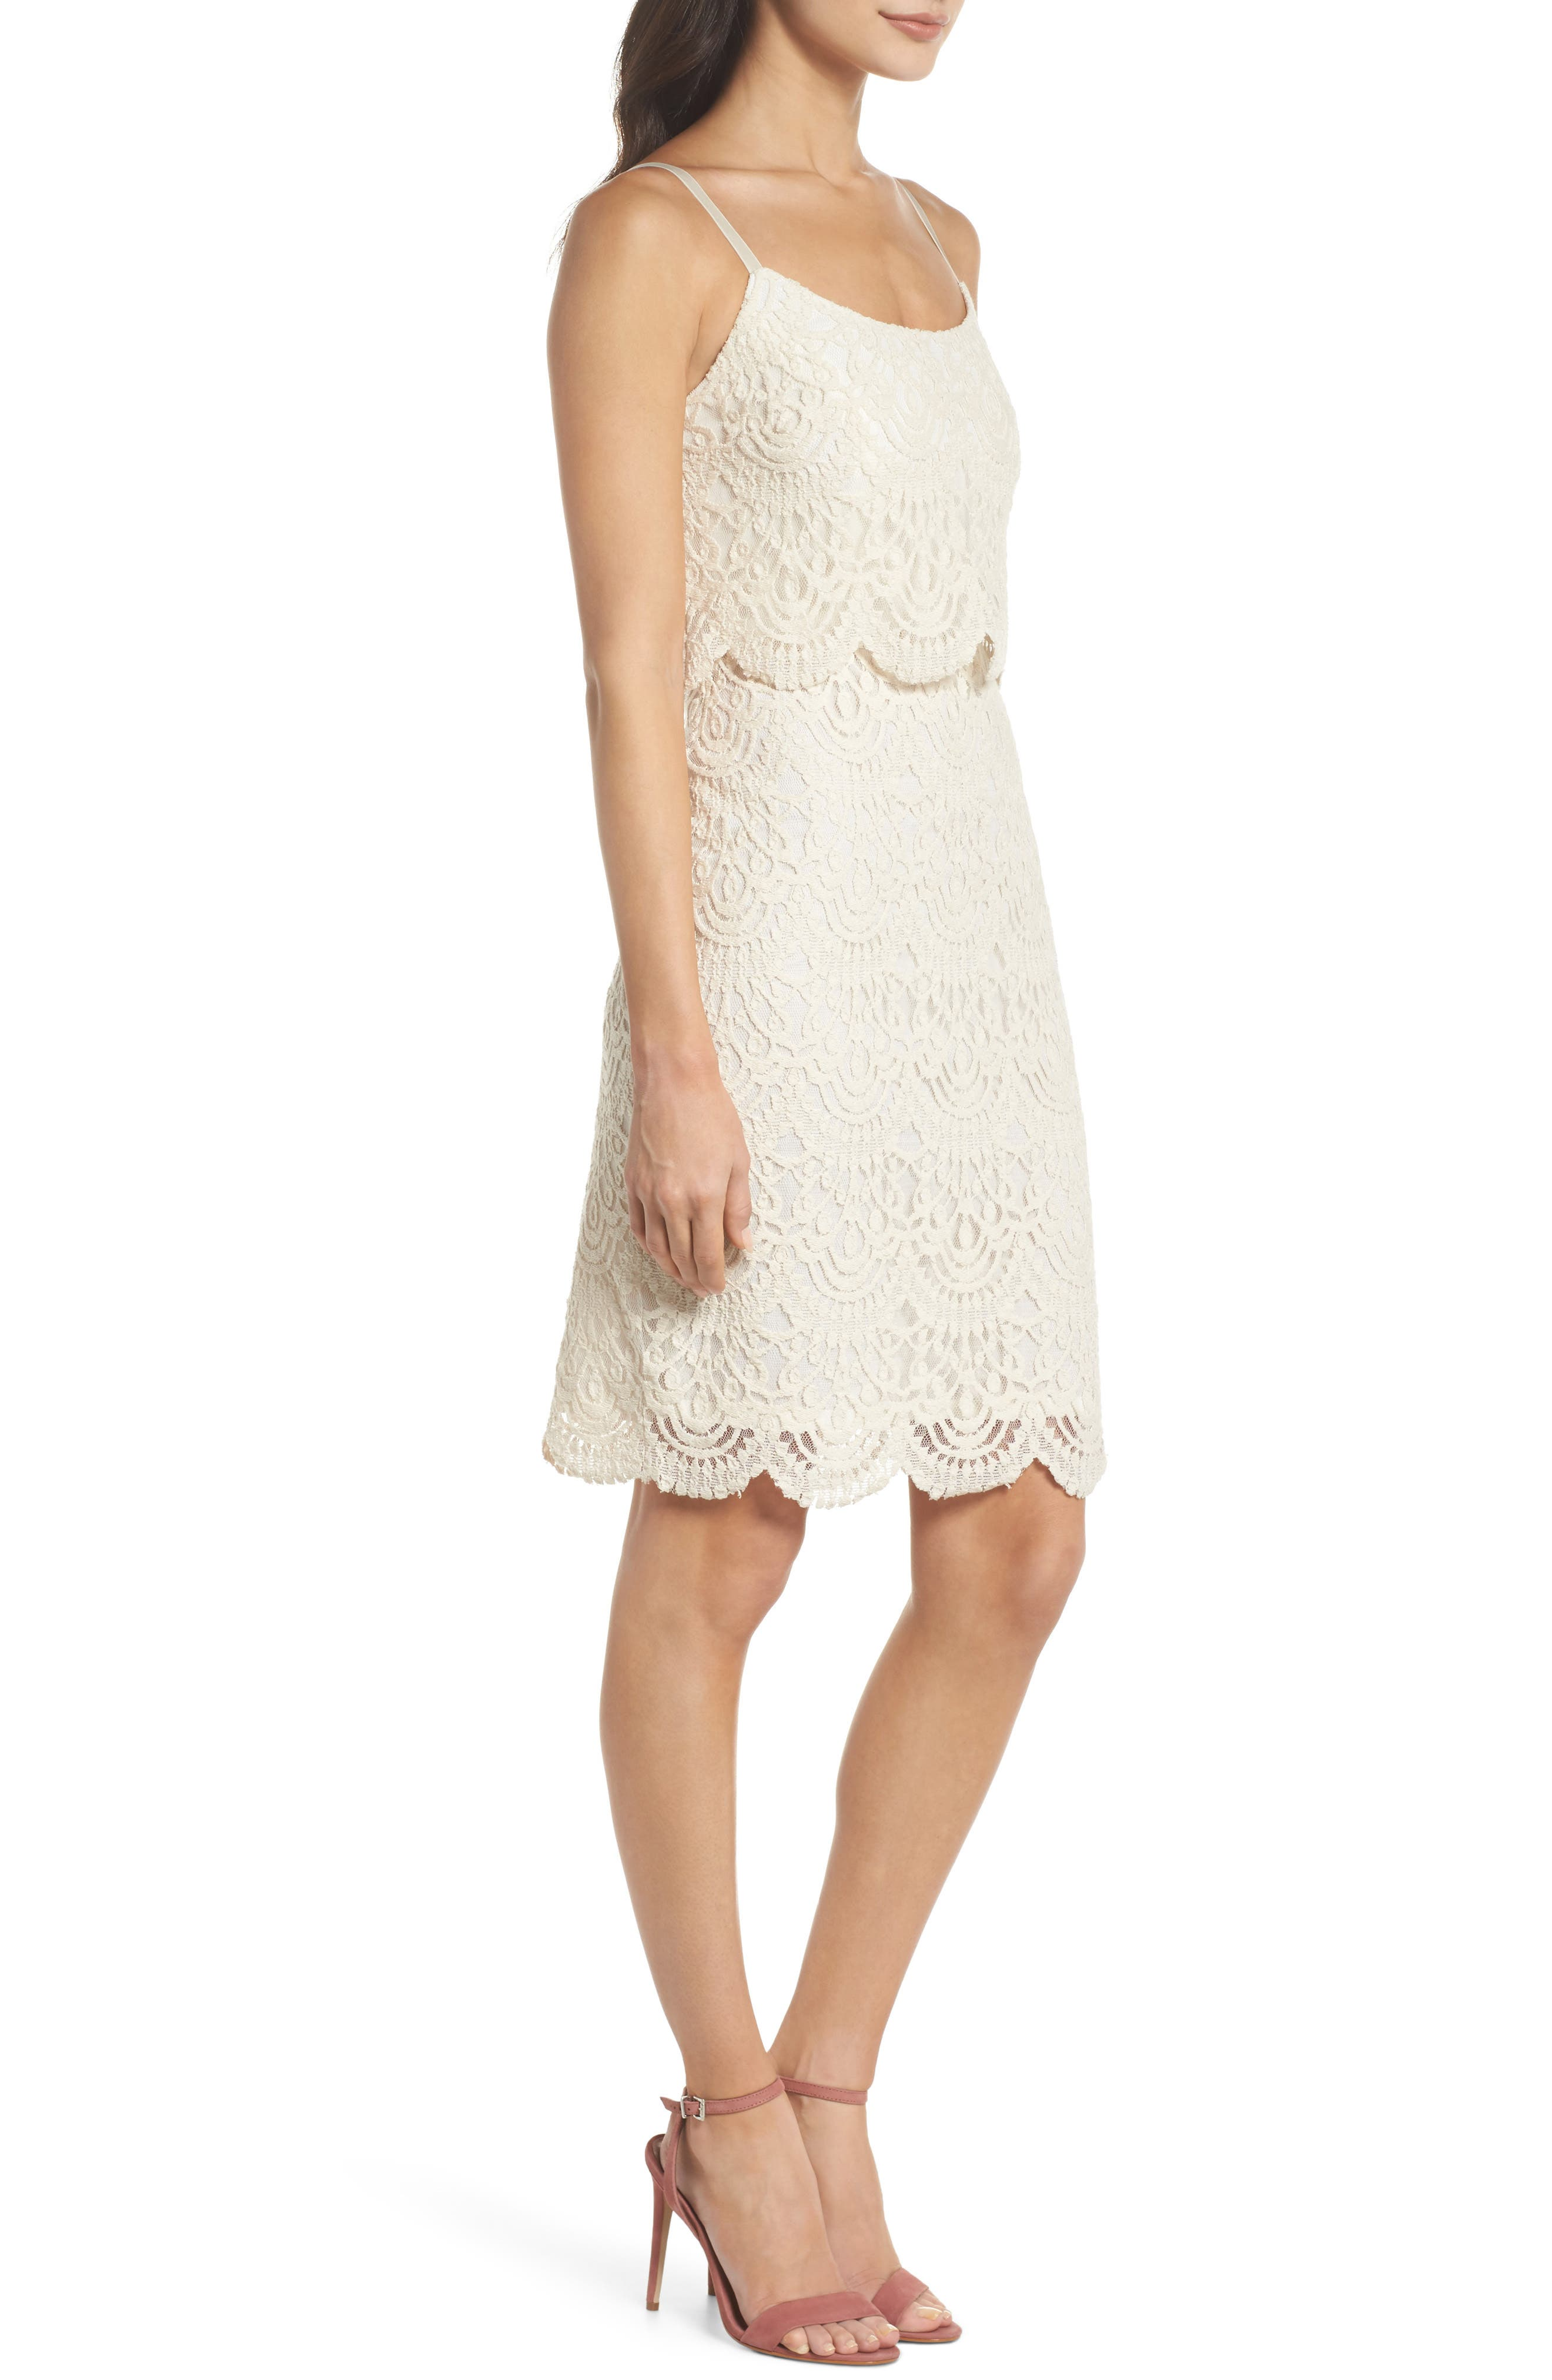 Barnsdall Afternoon Tiered Lace Dress,                             Alternate thumbnail 4, color,                             Vintage Lace